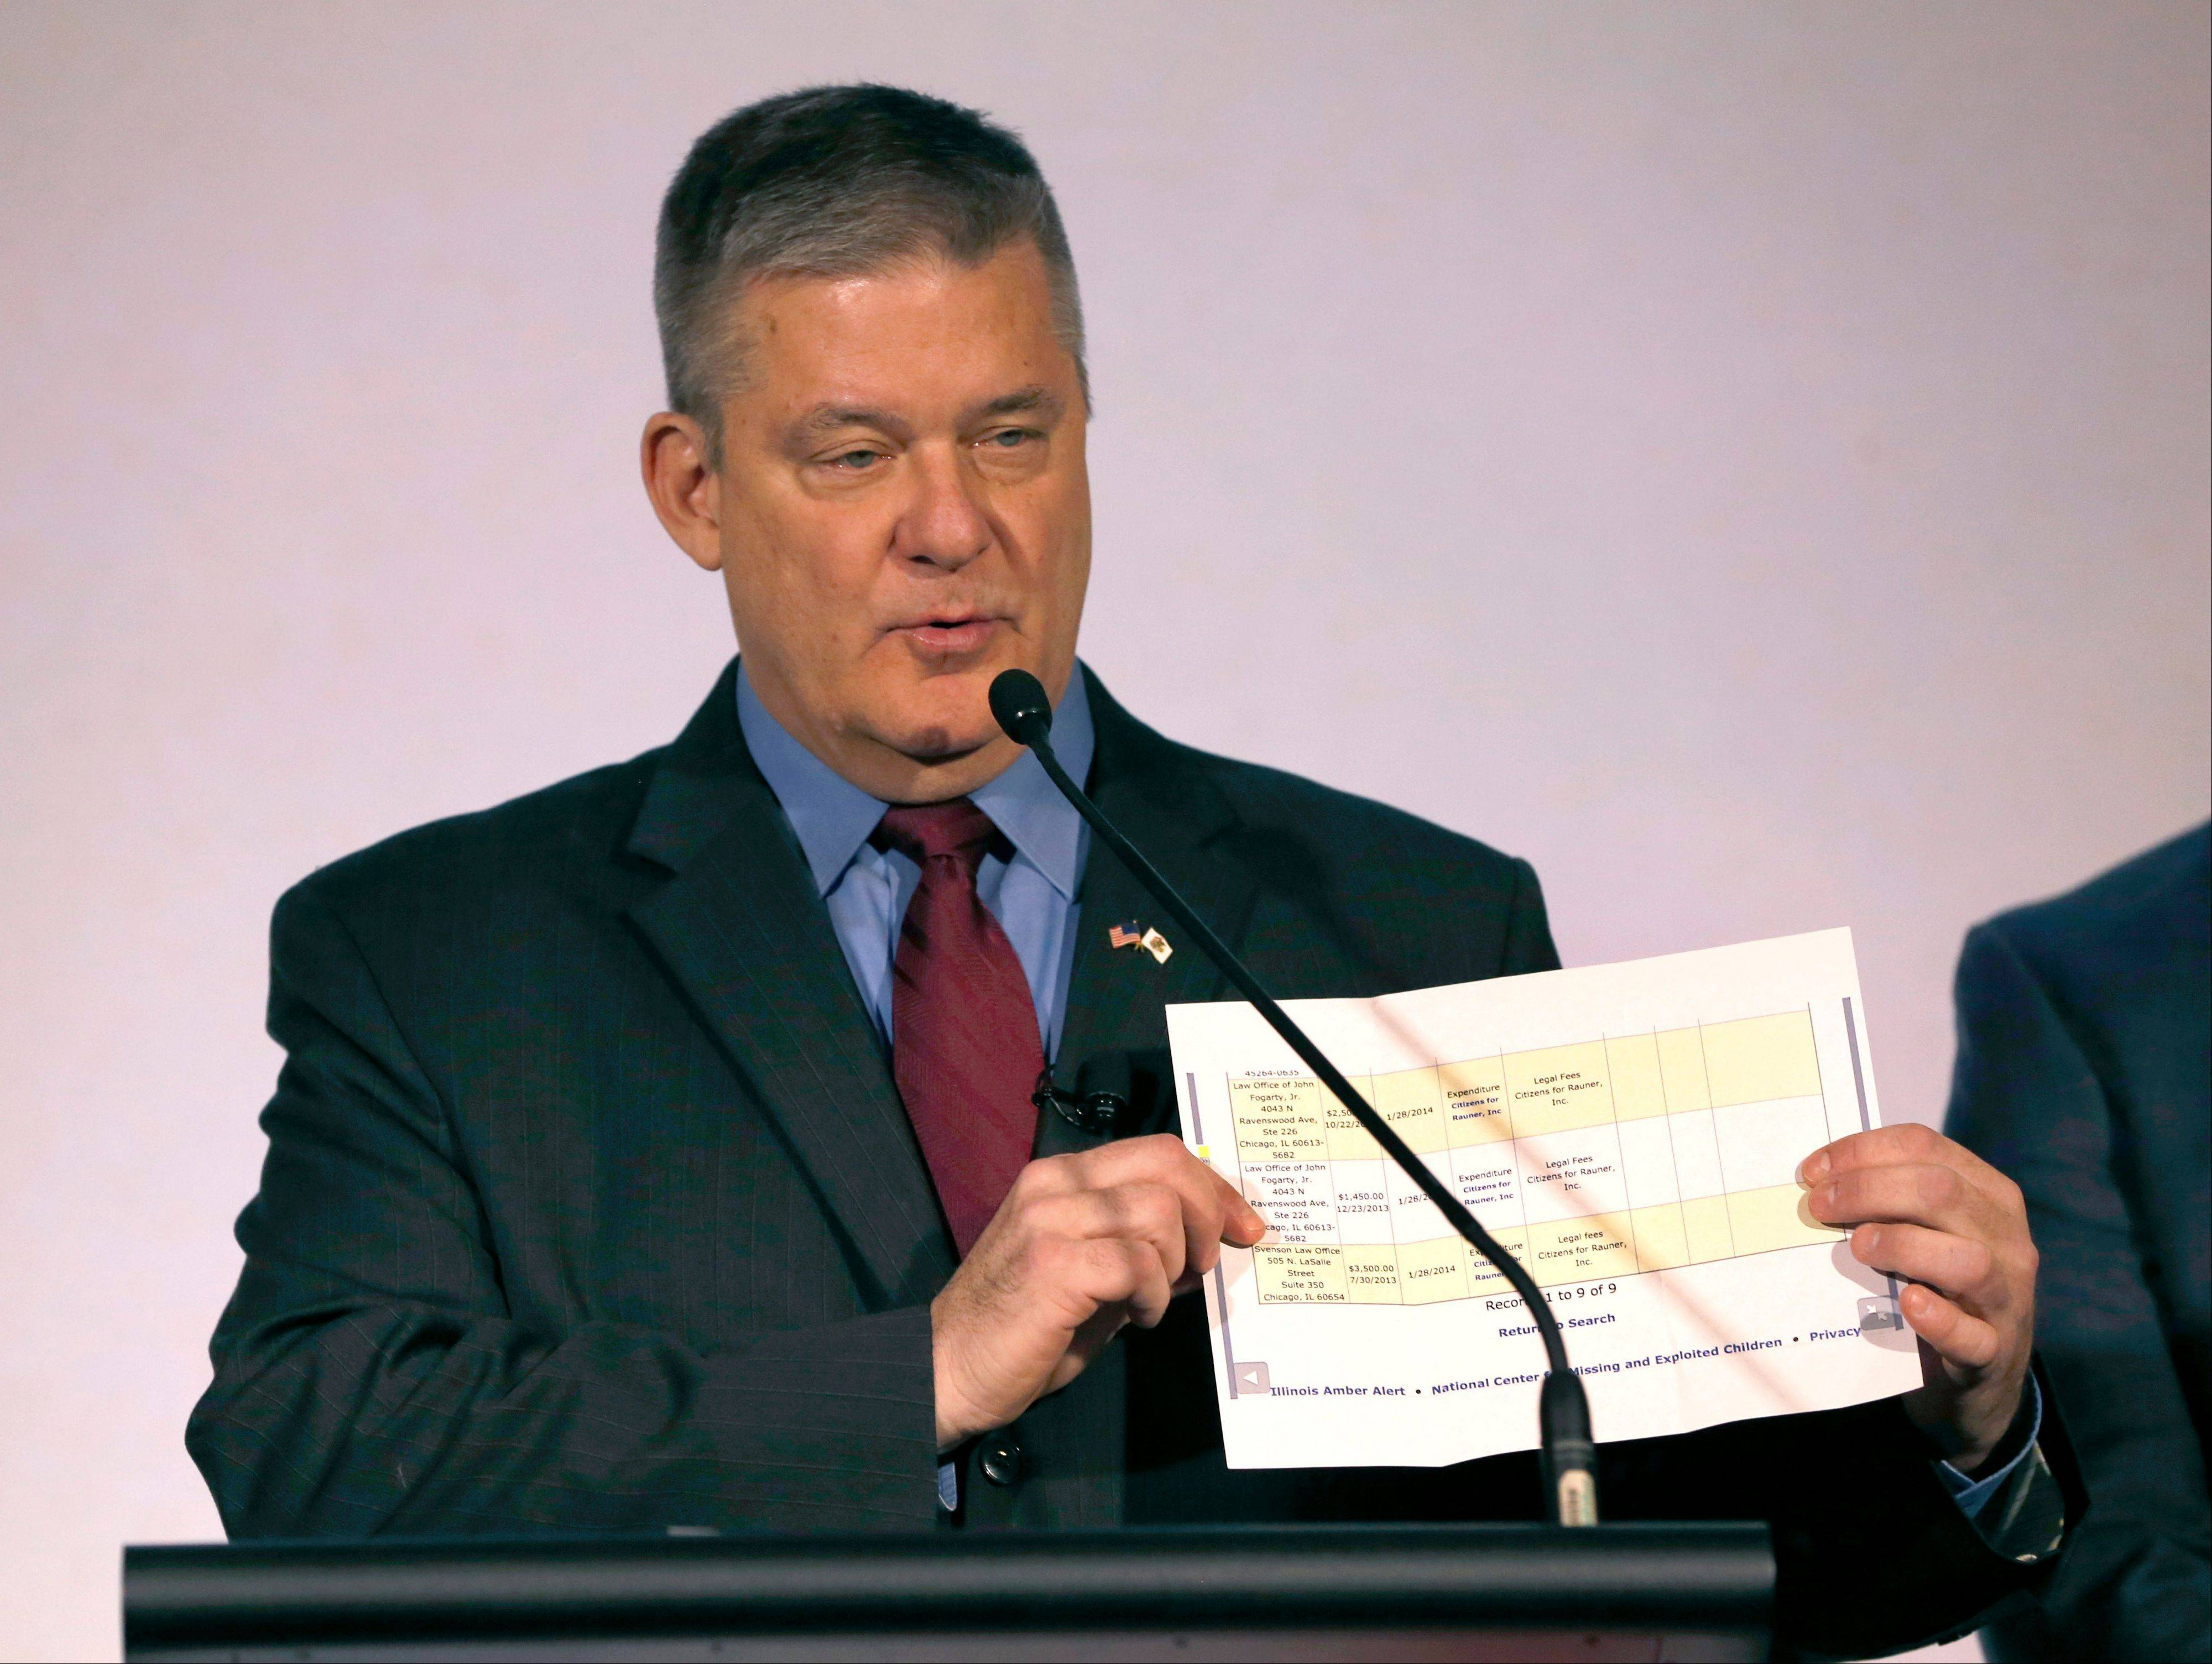 Illinois Treasurer and Republican candidate for governor Dan Rutherford holds up a copy of gubernatorial candidate Bruce Rauner�s recent campaign finance report Friday after announcing his office is investigating allegations against him made by an employee he suspects was put up to it by Rauner.